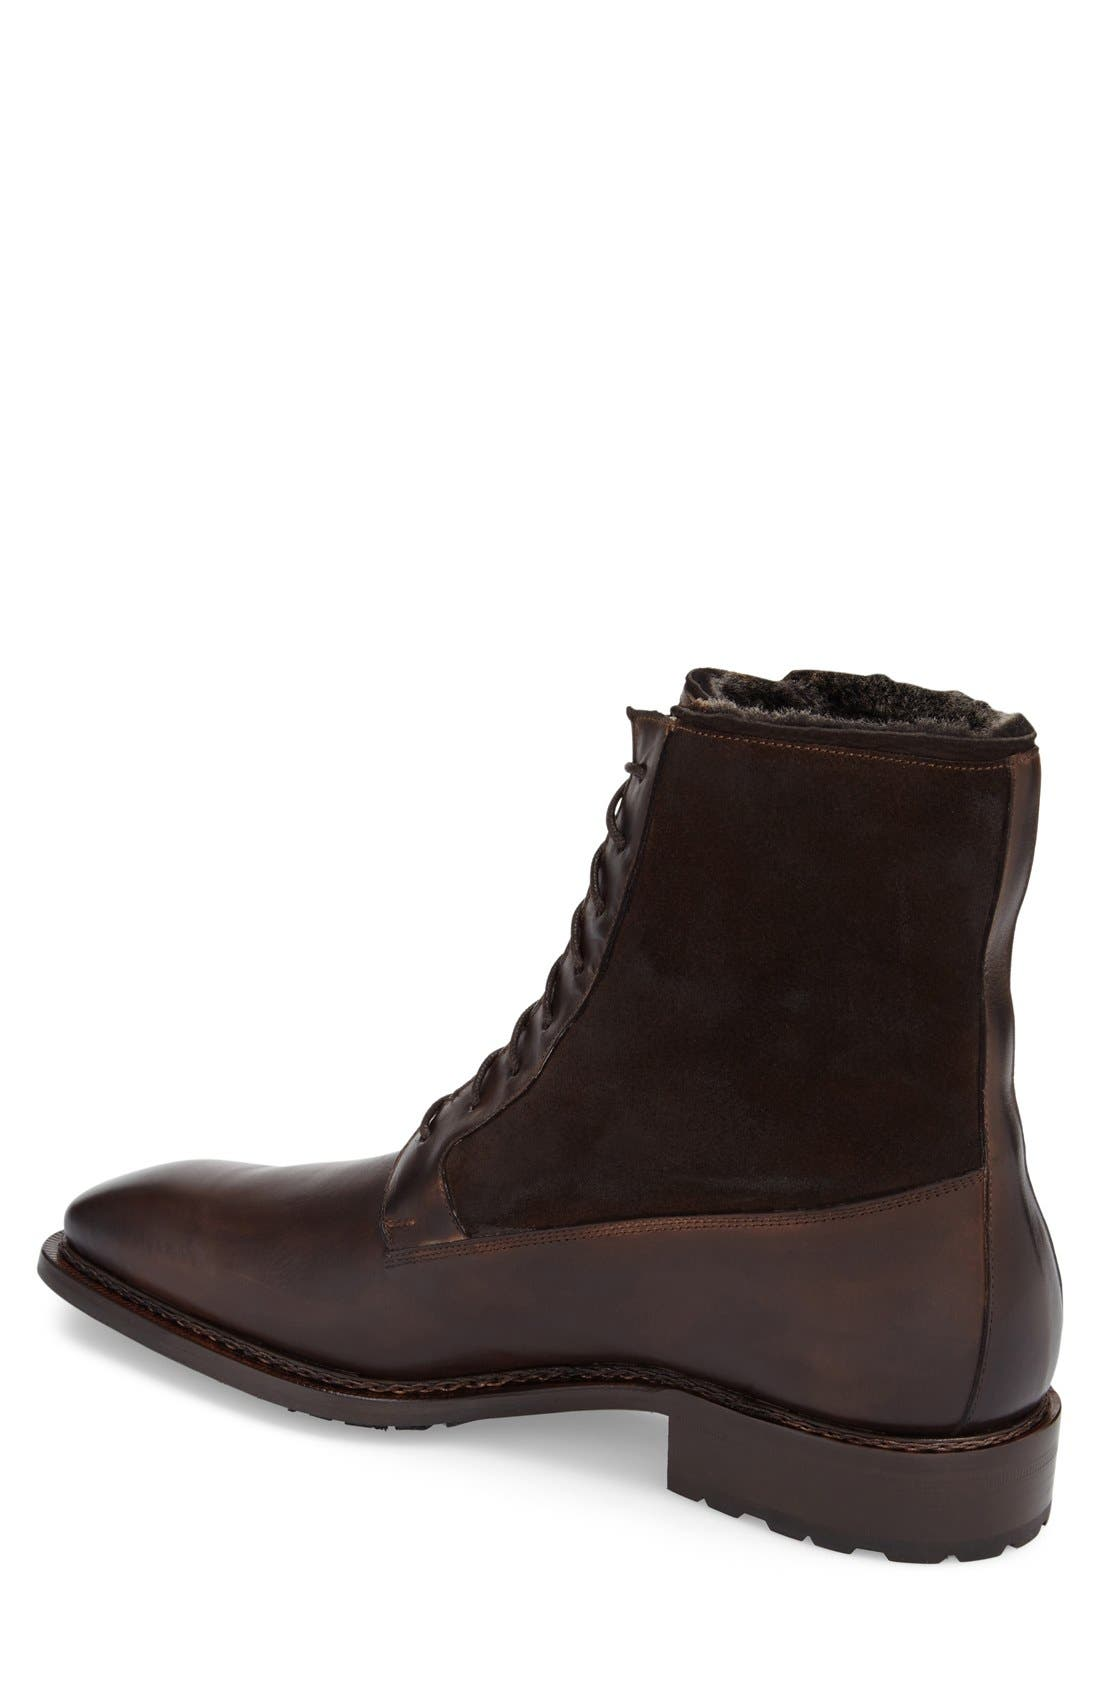 'Luzern' Genuine Shearling Boot,                             Alternate thumbnail 7, color,